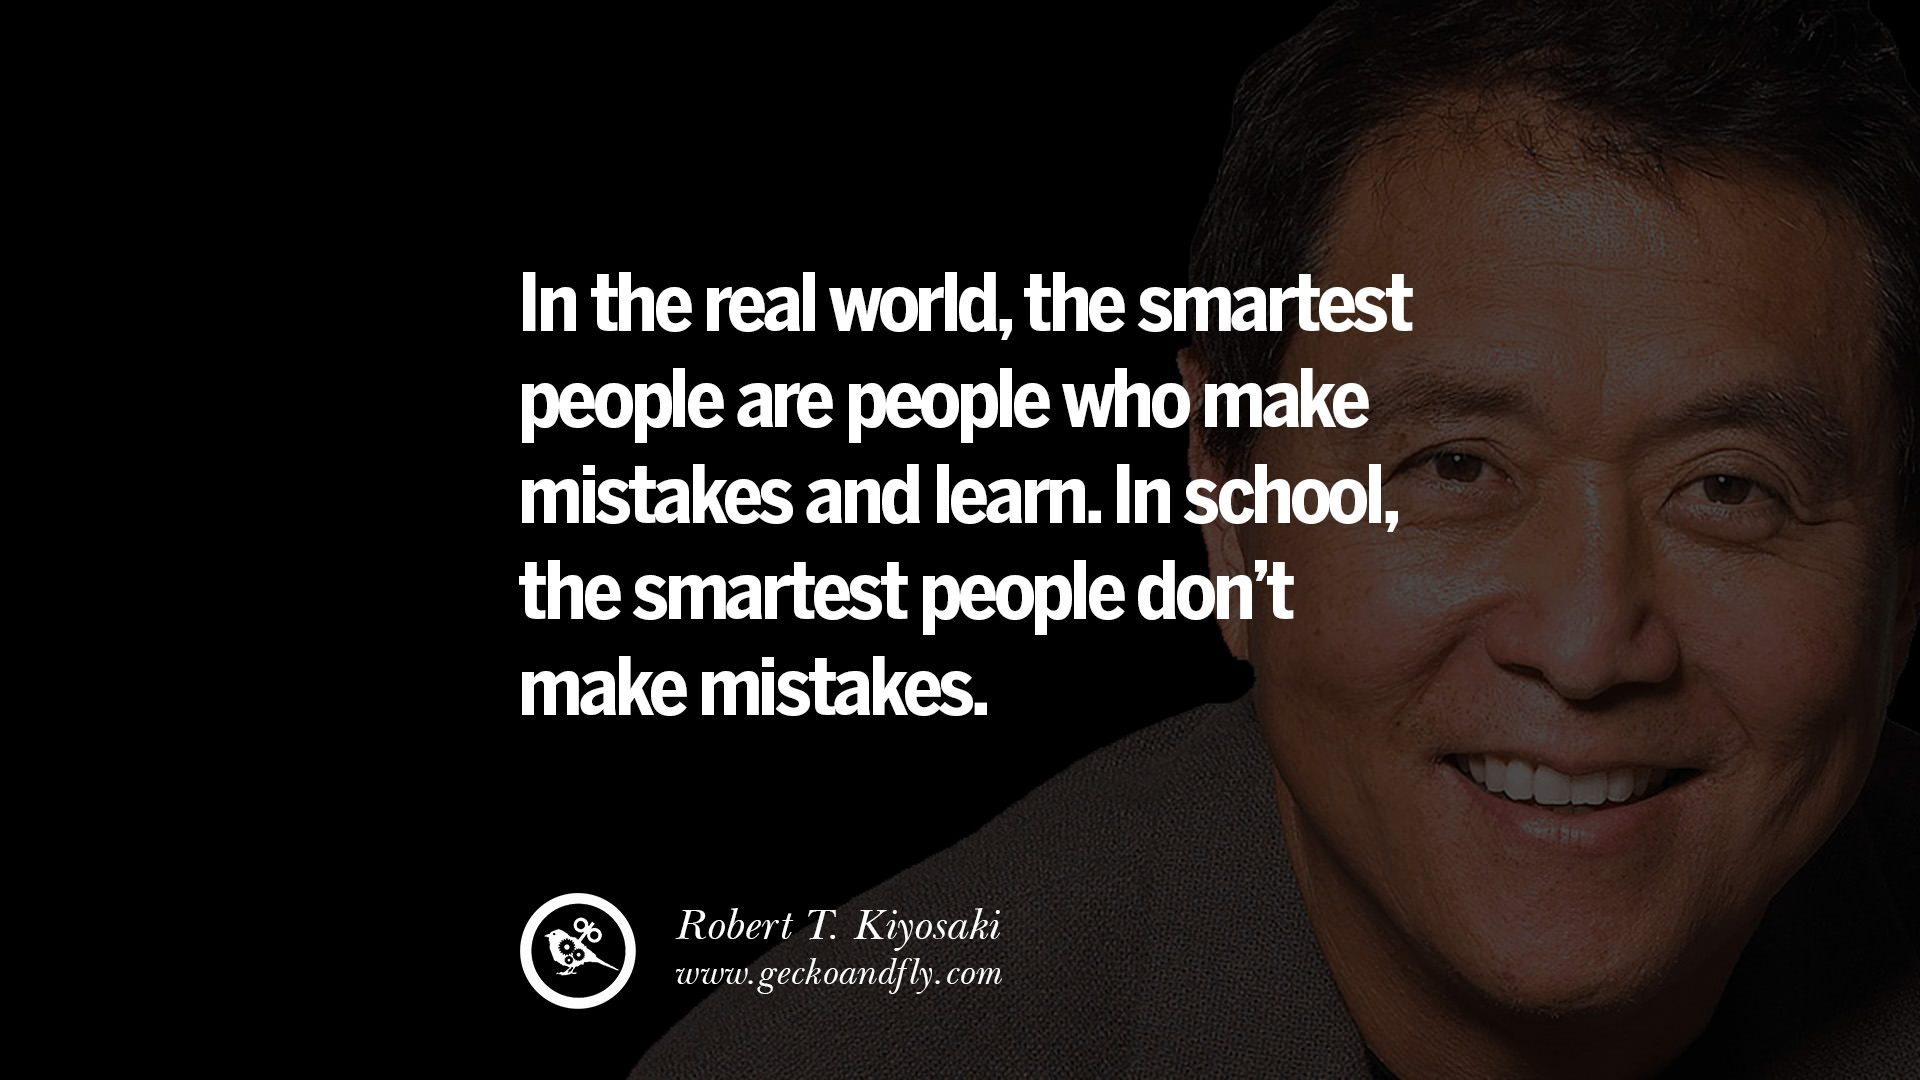 Rich Dad Poor Dad Quotes Mesmerizing 60 Motivational Robert Tkiyosaki Quotes For Selling Amway